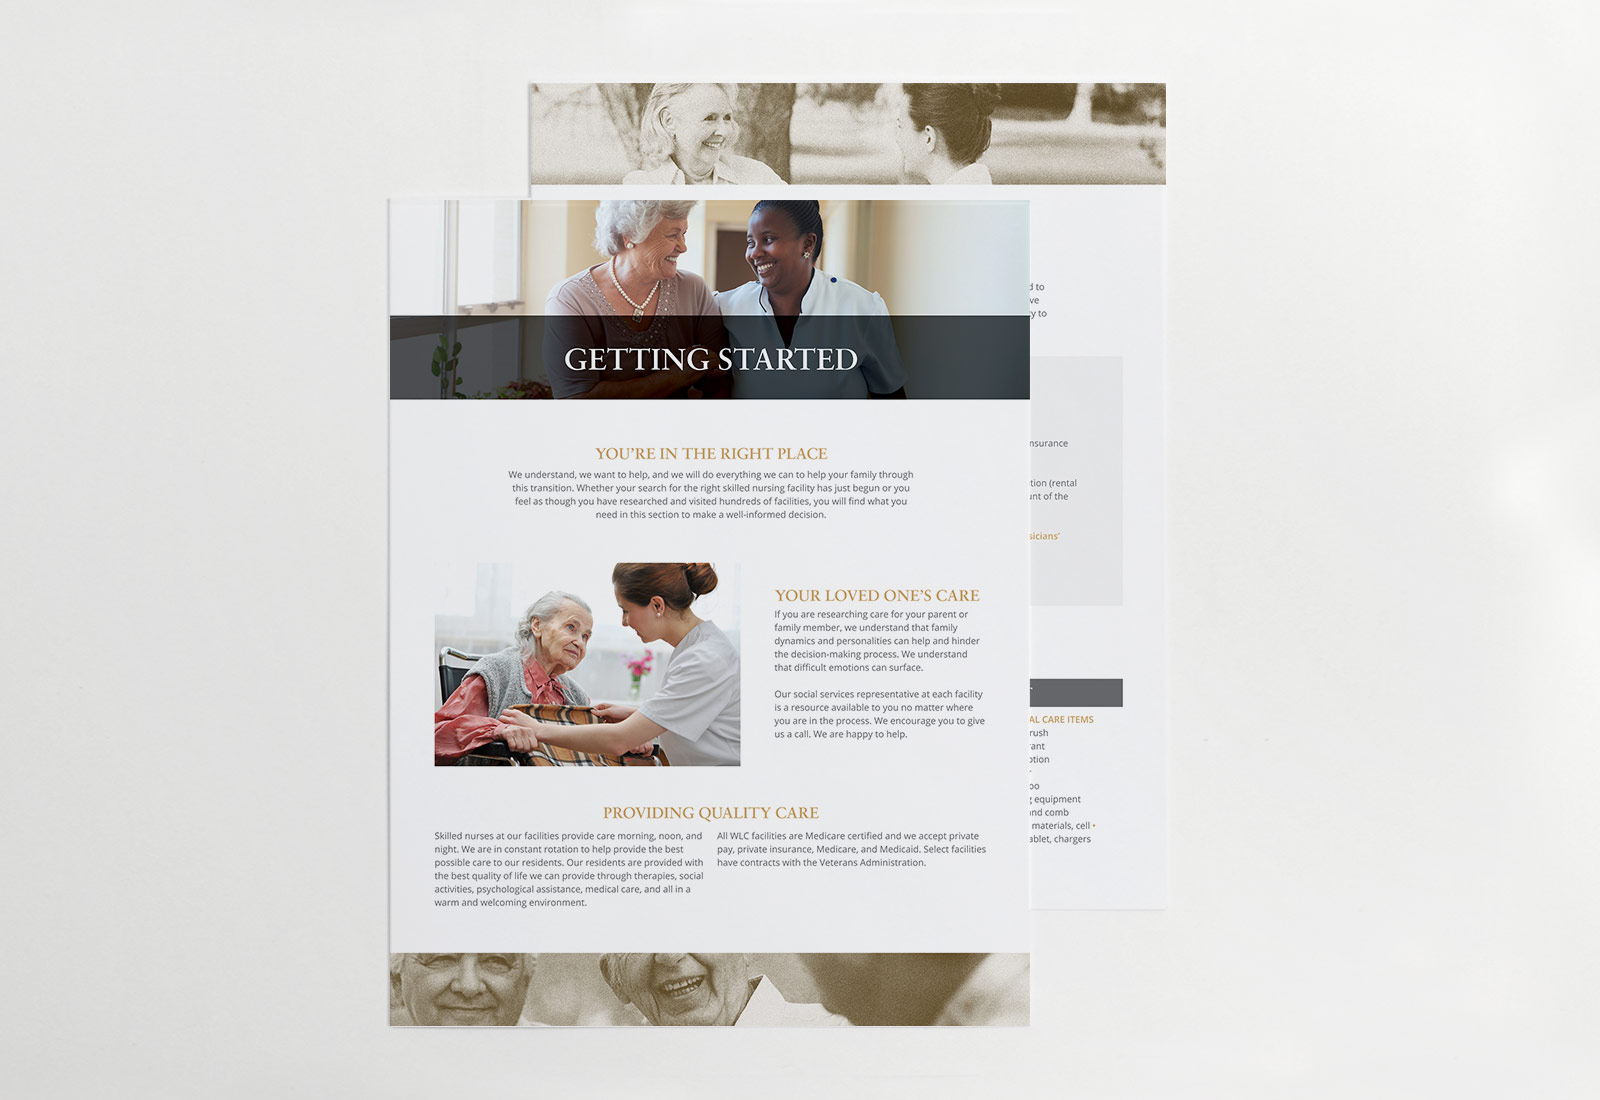 Assisted Living Senior Living Facility Getting Started Flyer Design